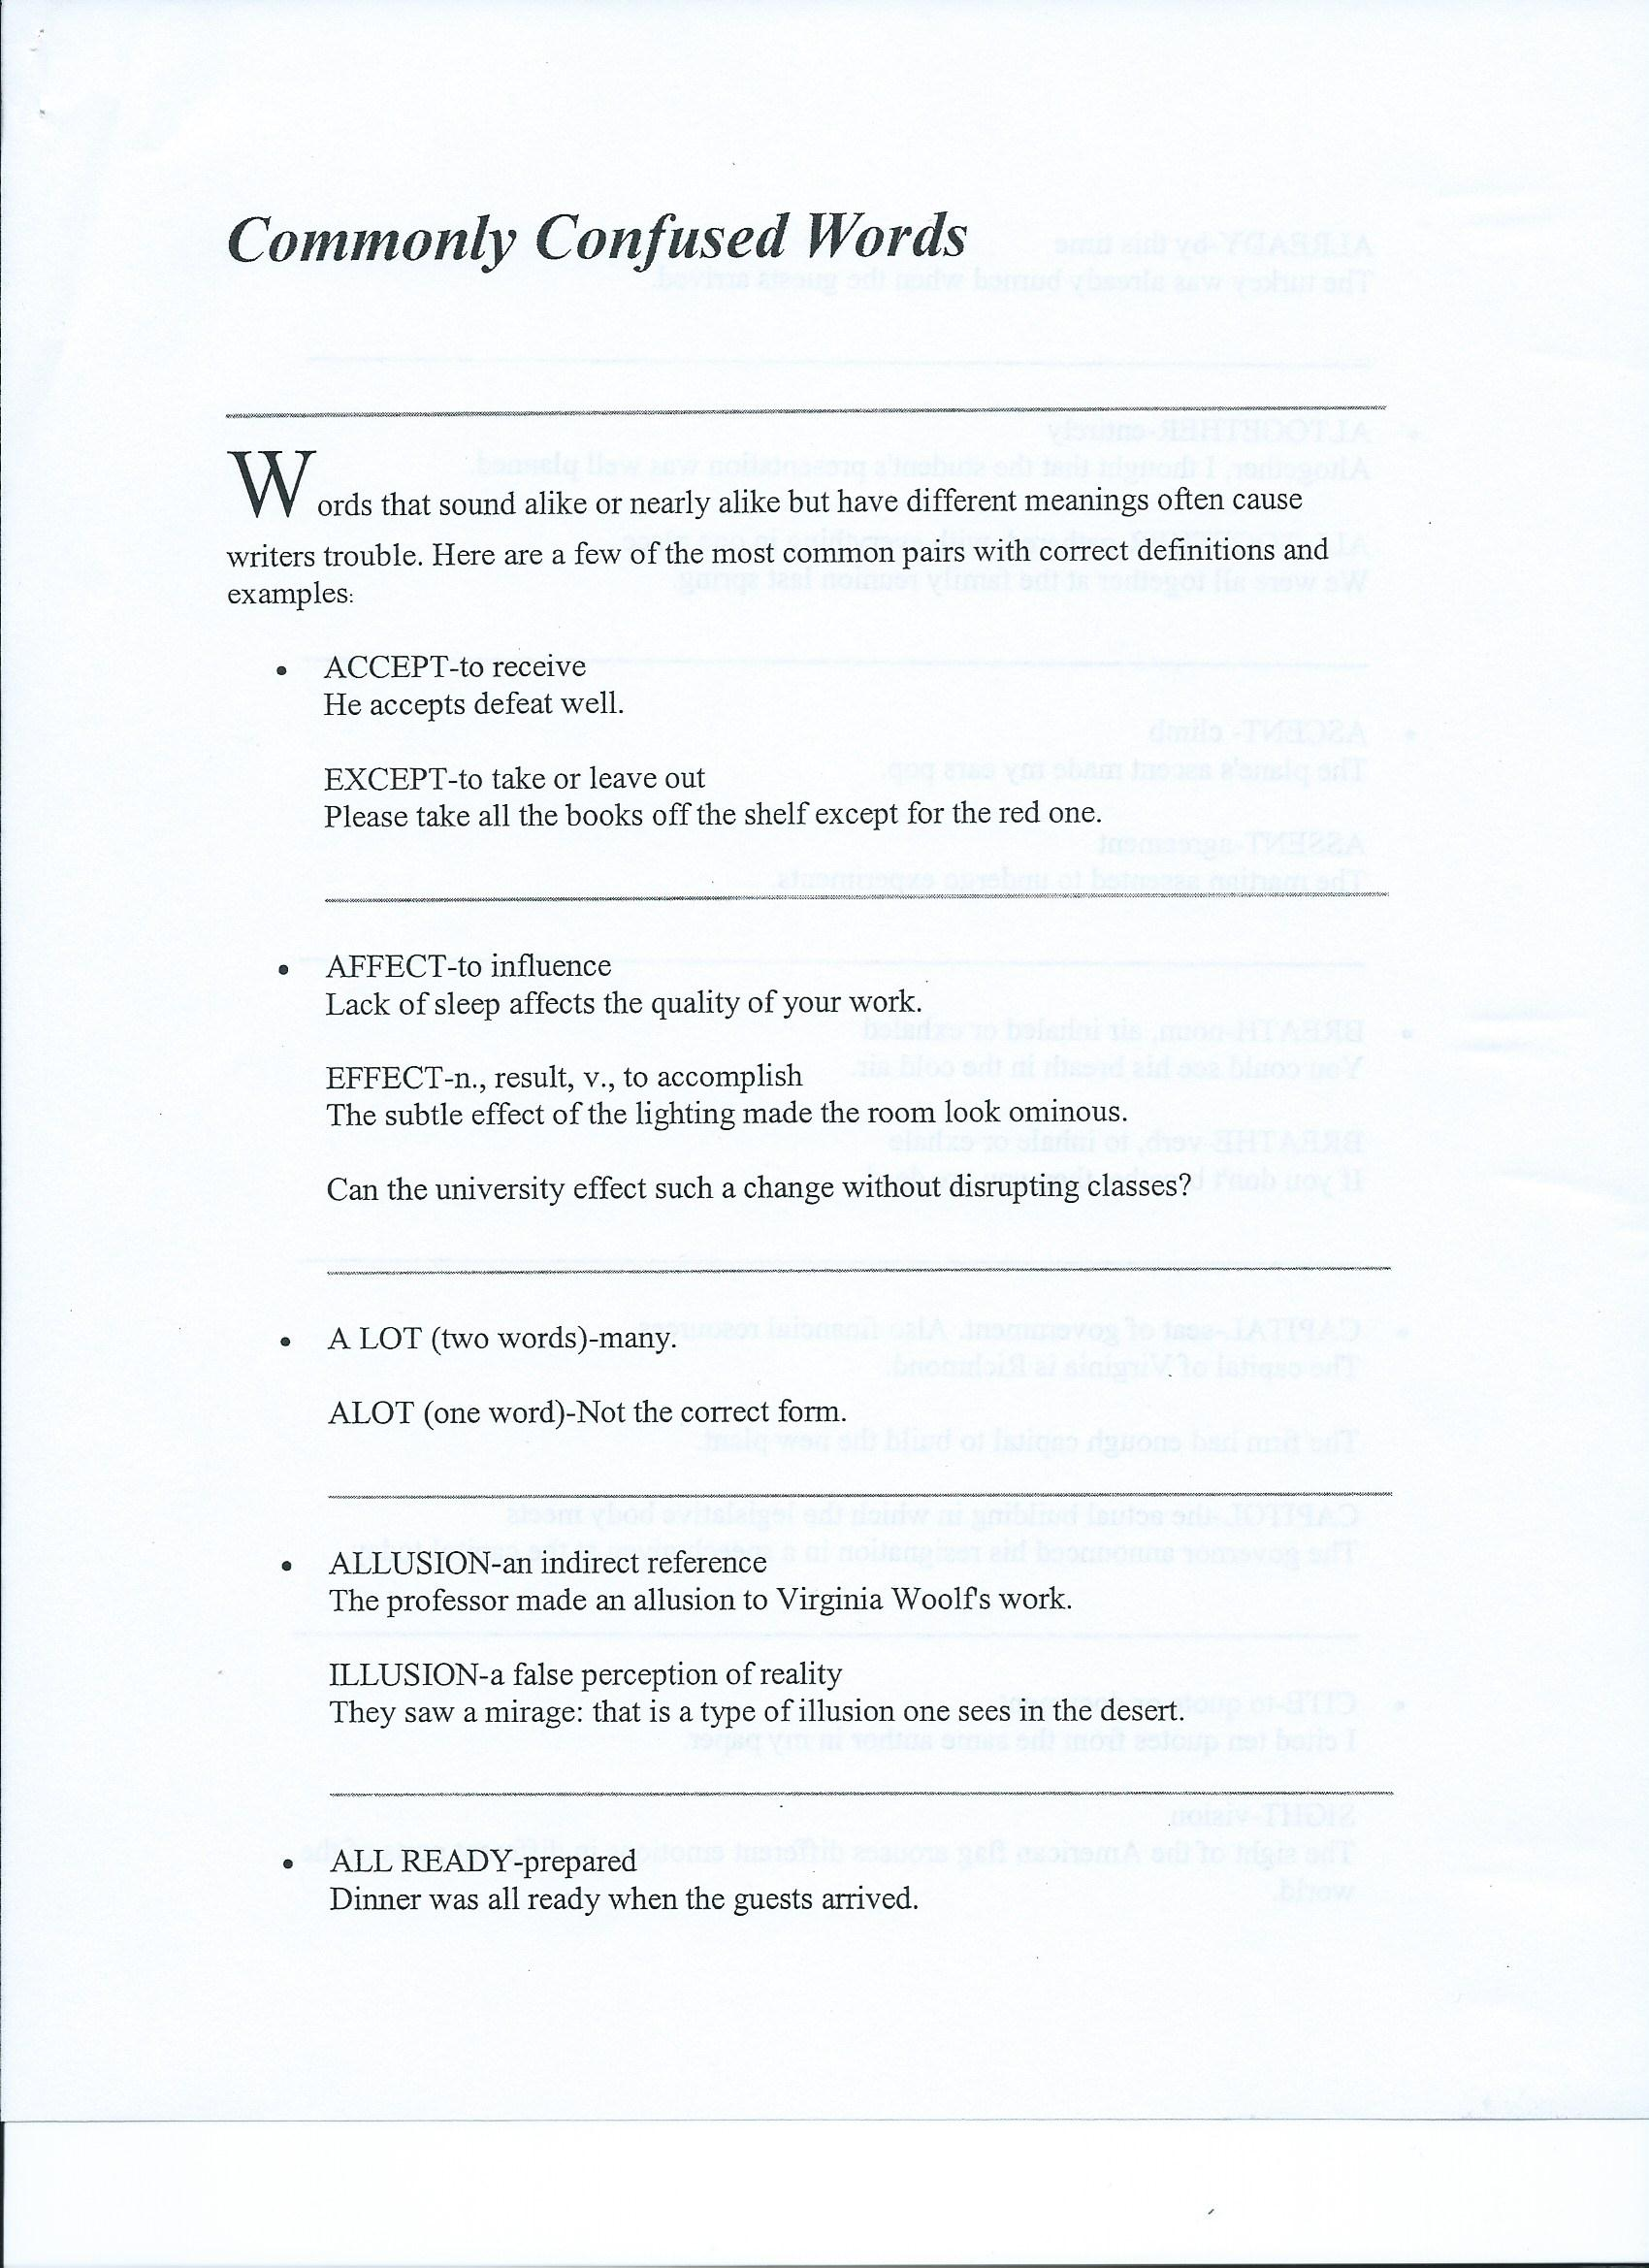 worksheet Commonly Confused Words Worksheet section 4 practicing learner centered professionalism joshua commonly confused words worksheet 1 2